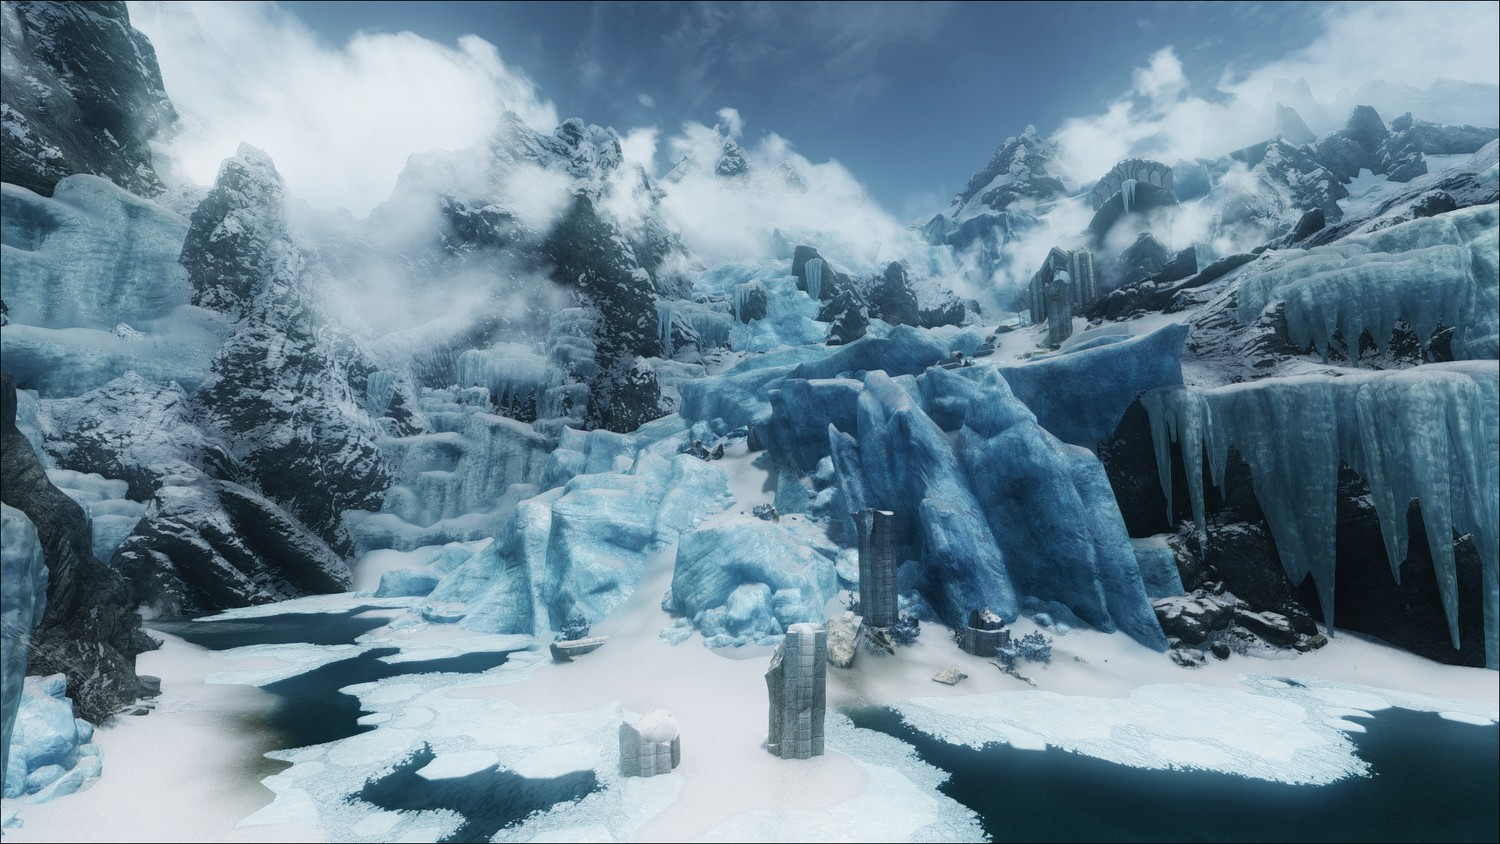 These Modded Elder Scrolls V Skyrim Screenshots Puts PS4Xbox One GraphicsVisuals To Shame